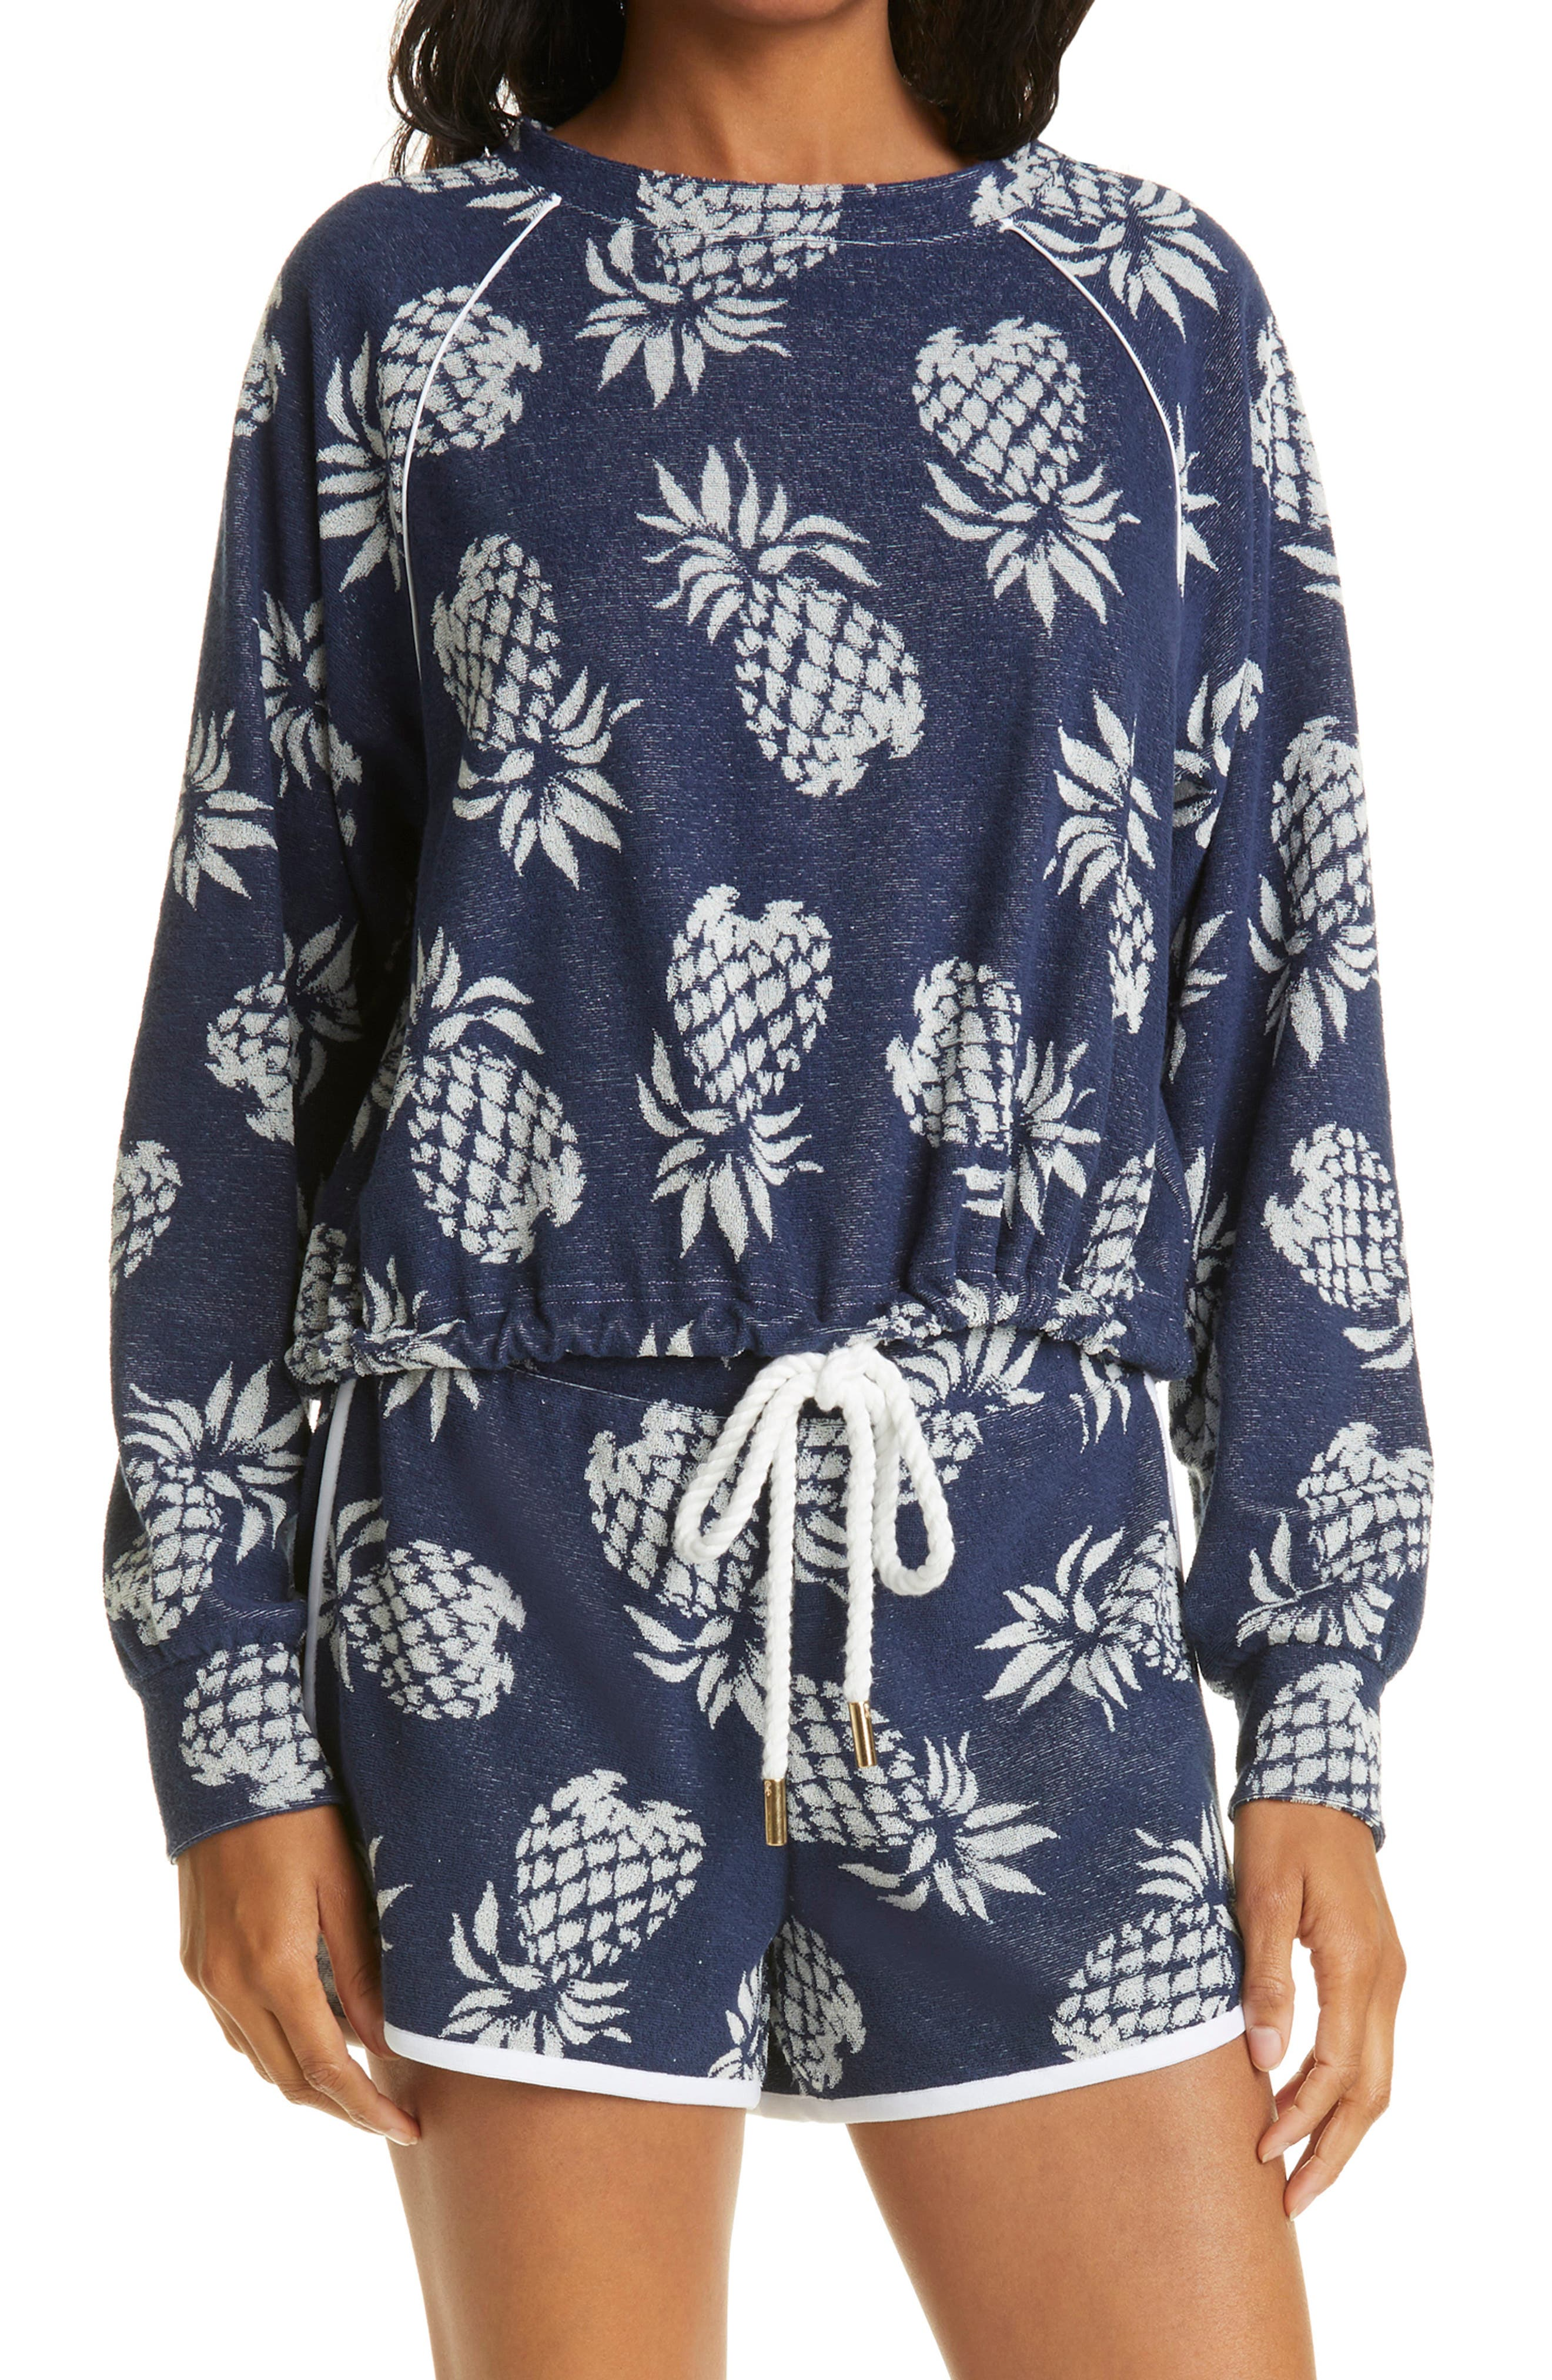 After Sundown Print Terry Cloth Pullover